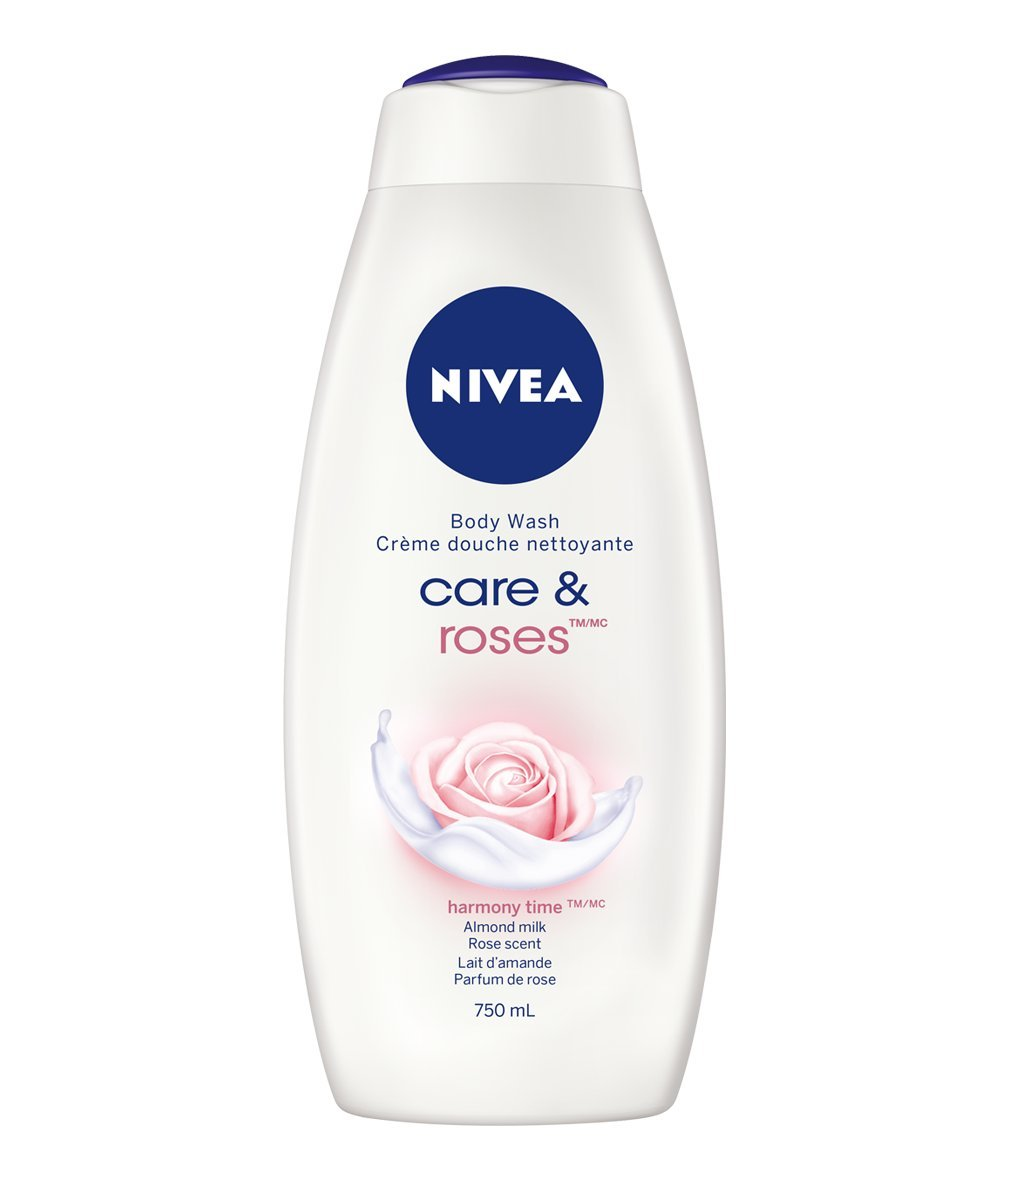 NIVEA Care & Orange Body Wash, 750 mL Beiersdorf Canada Inc.